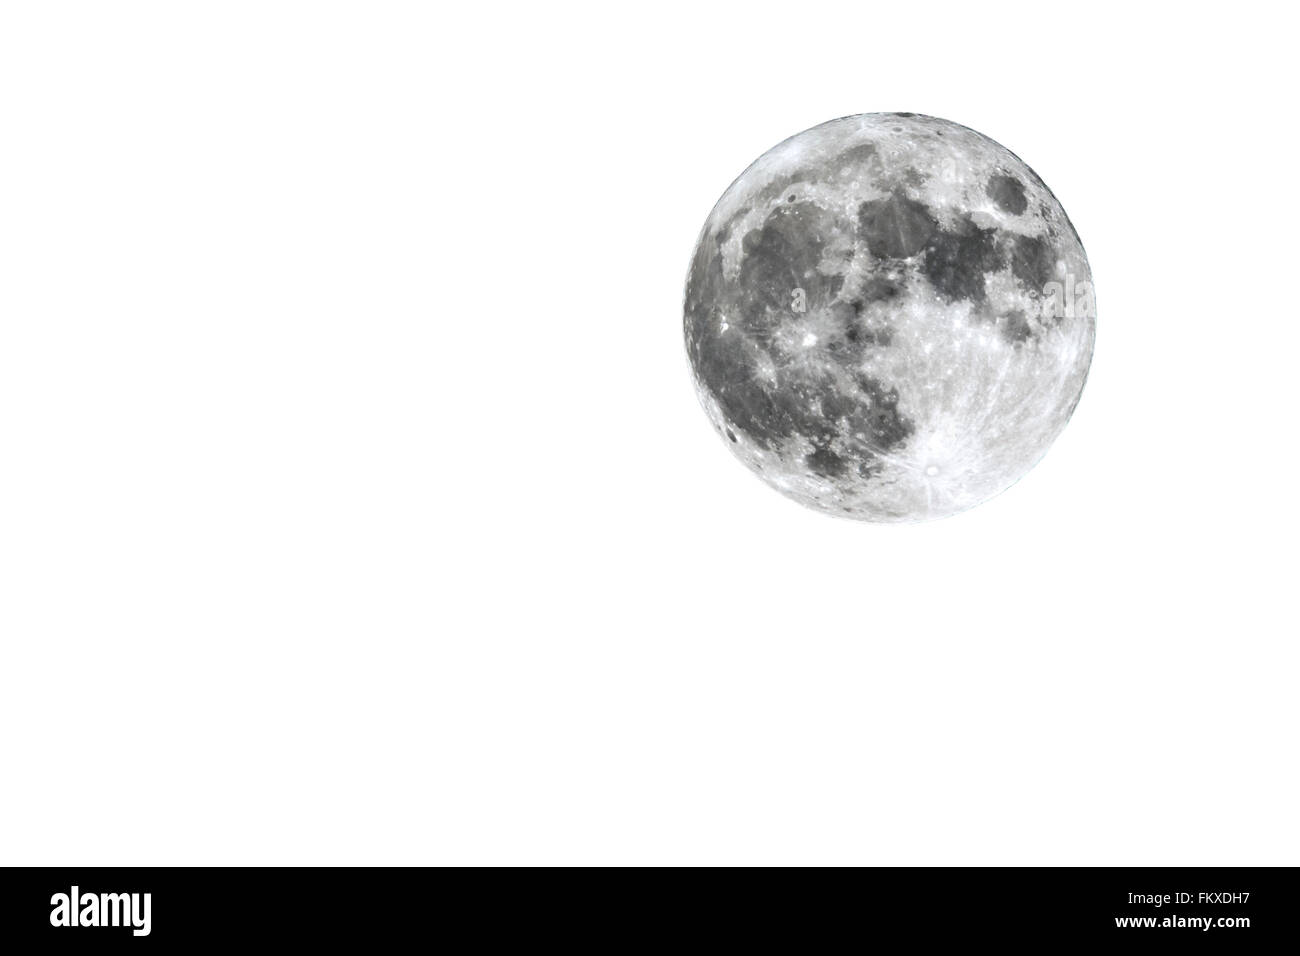 The full Moon is seen isolated on a white background. High contrast, high resolution image taken with a full frame - Stock Image